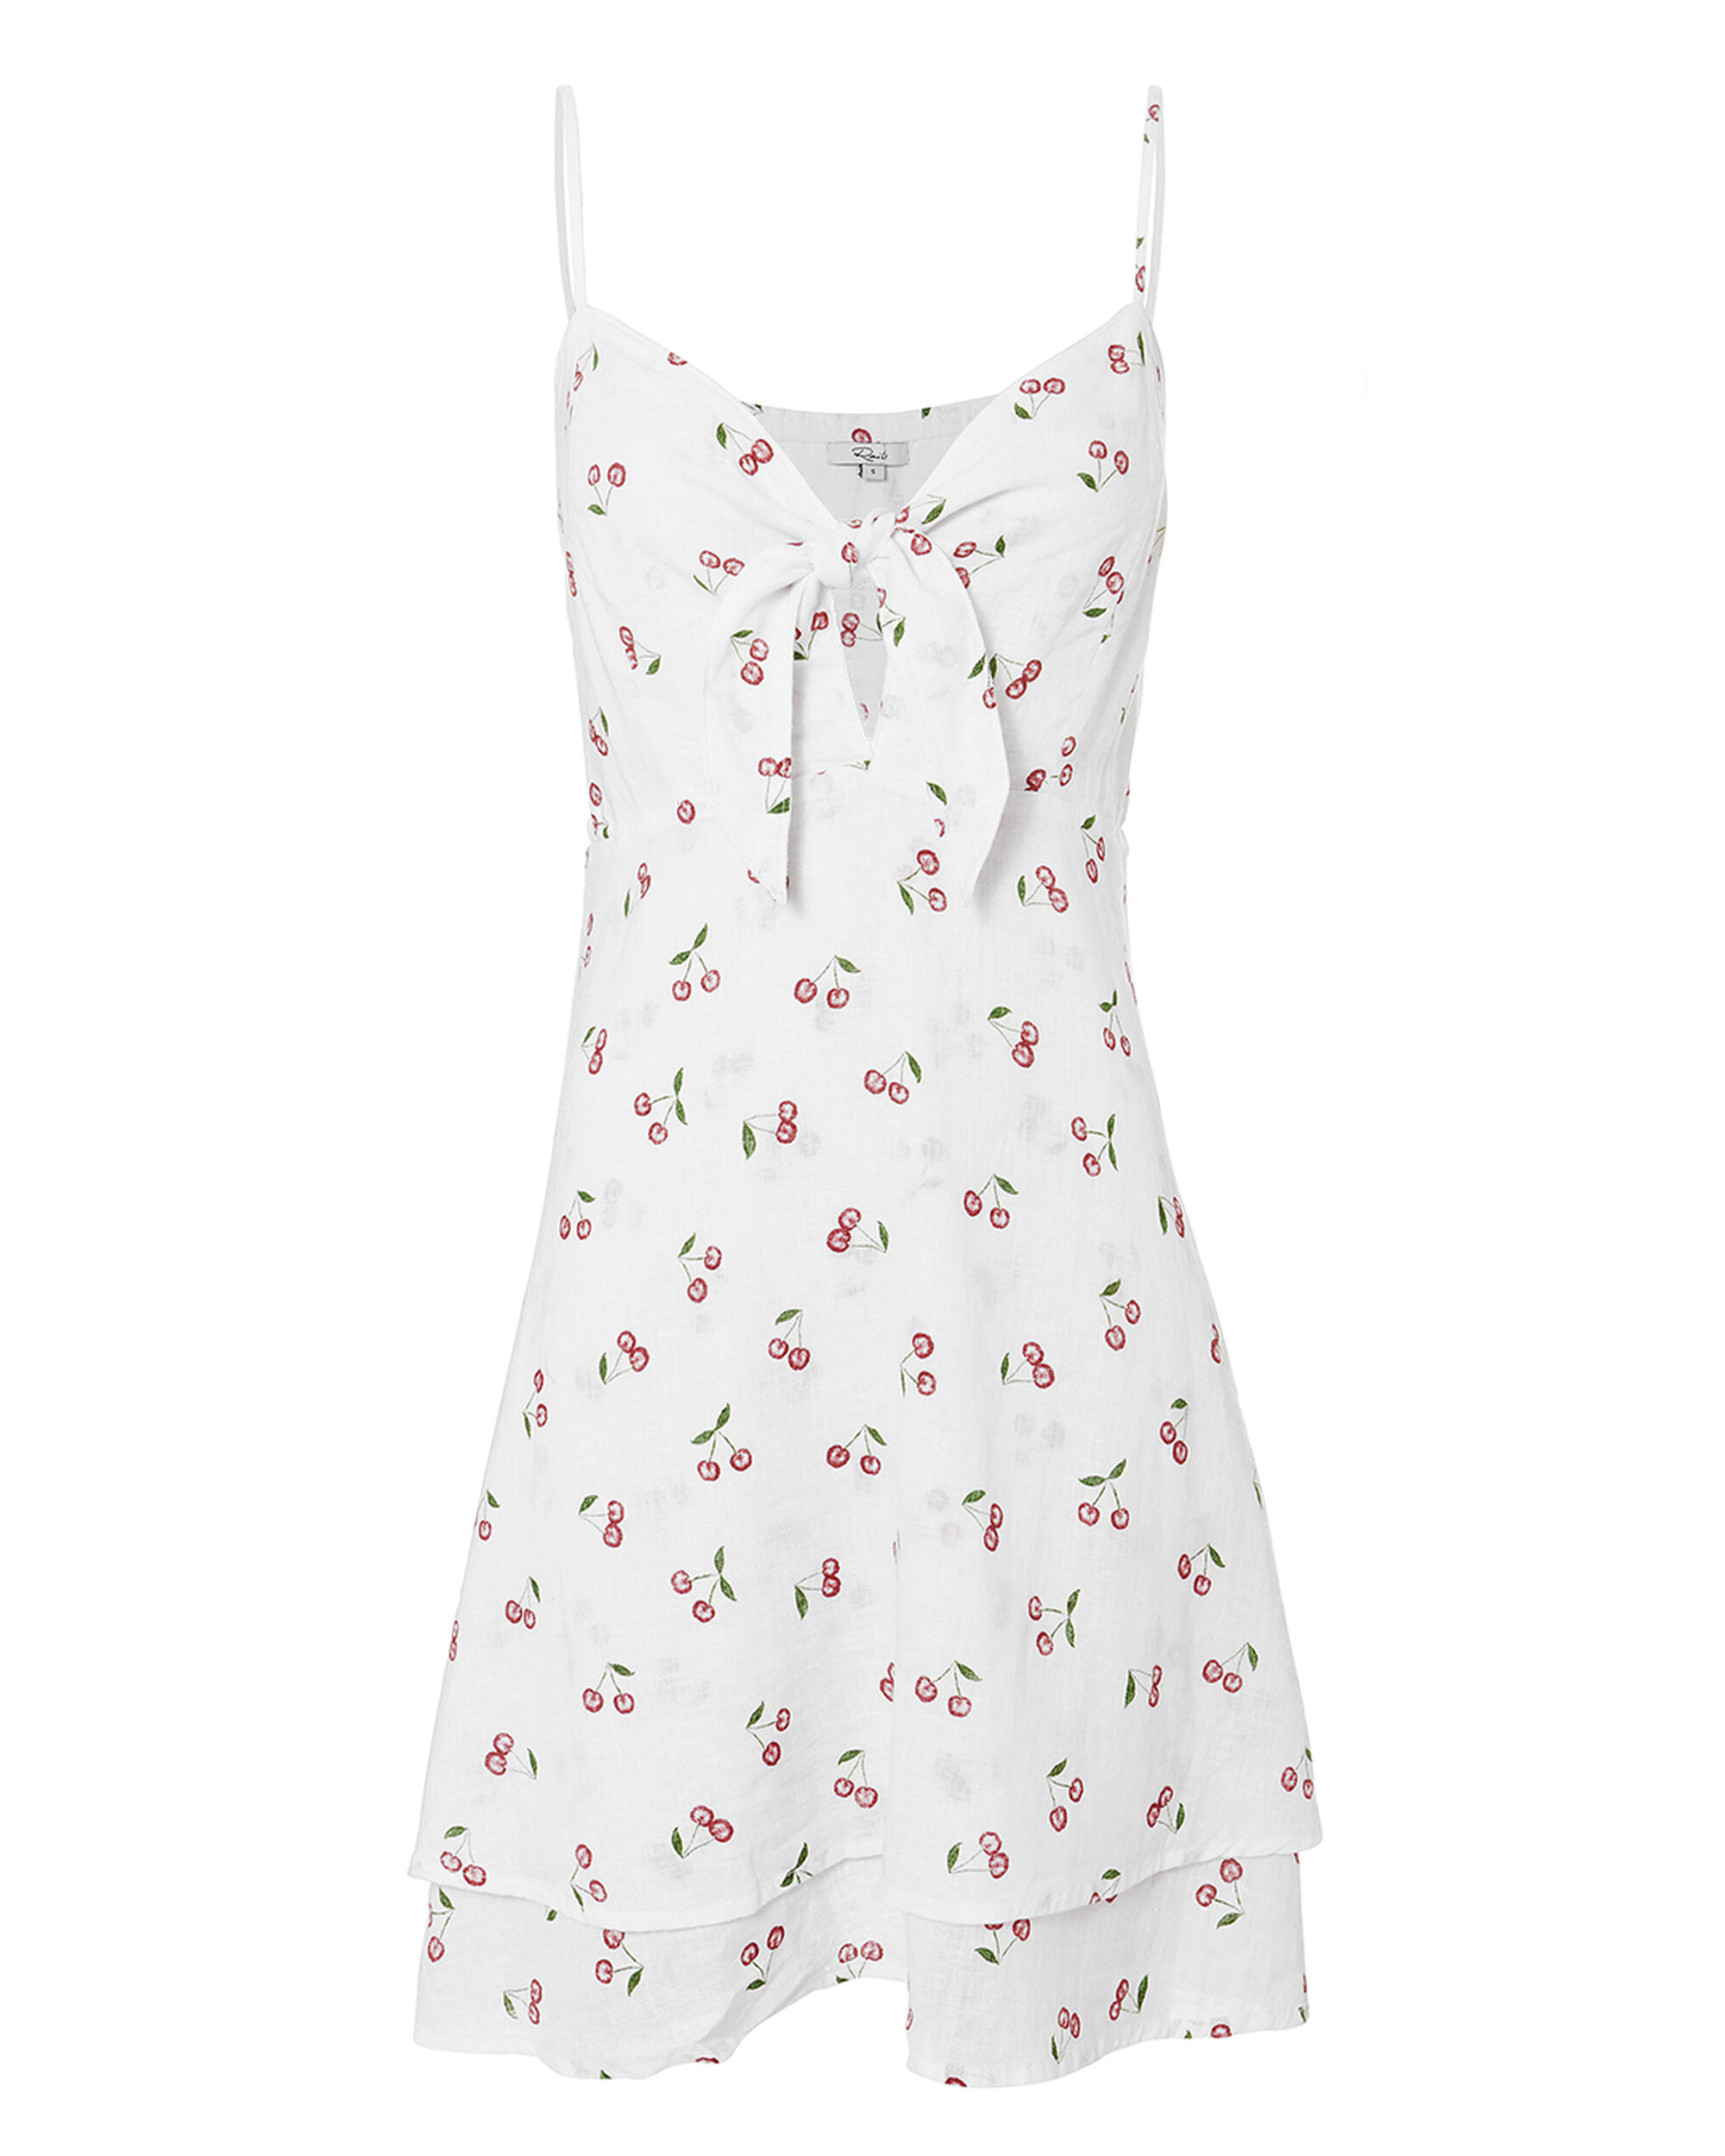 August Cherry Print Dress, MULTI, hi-res